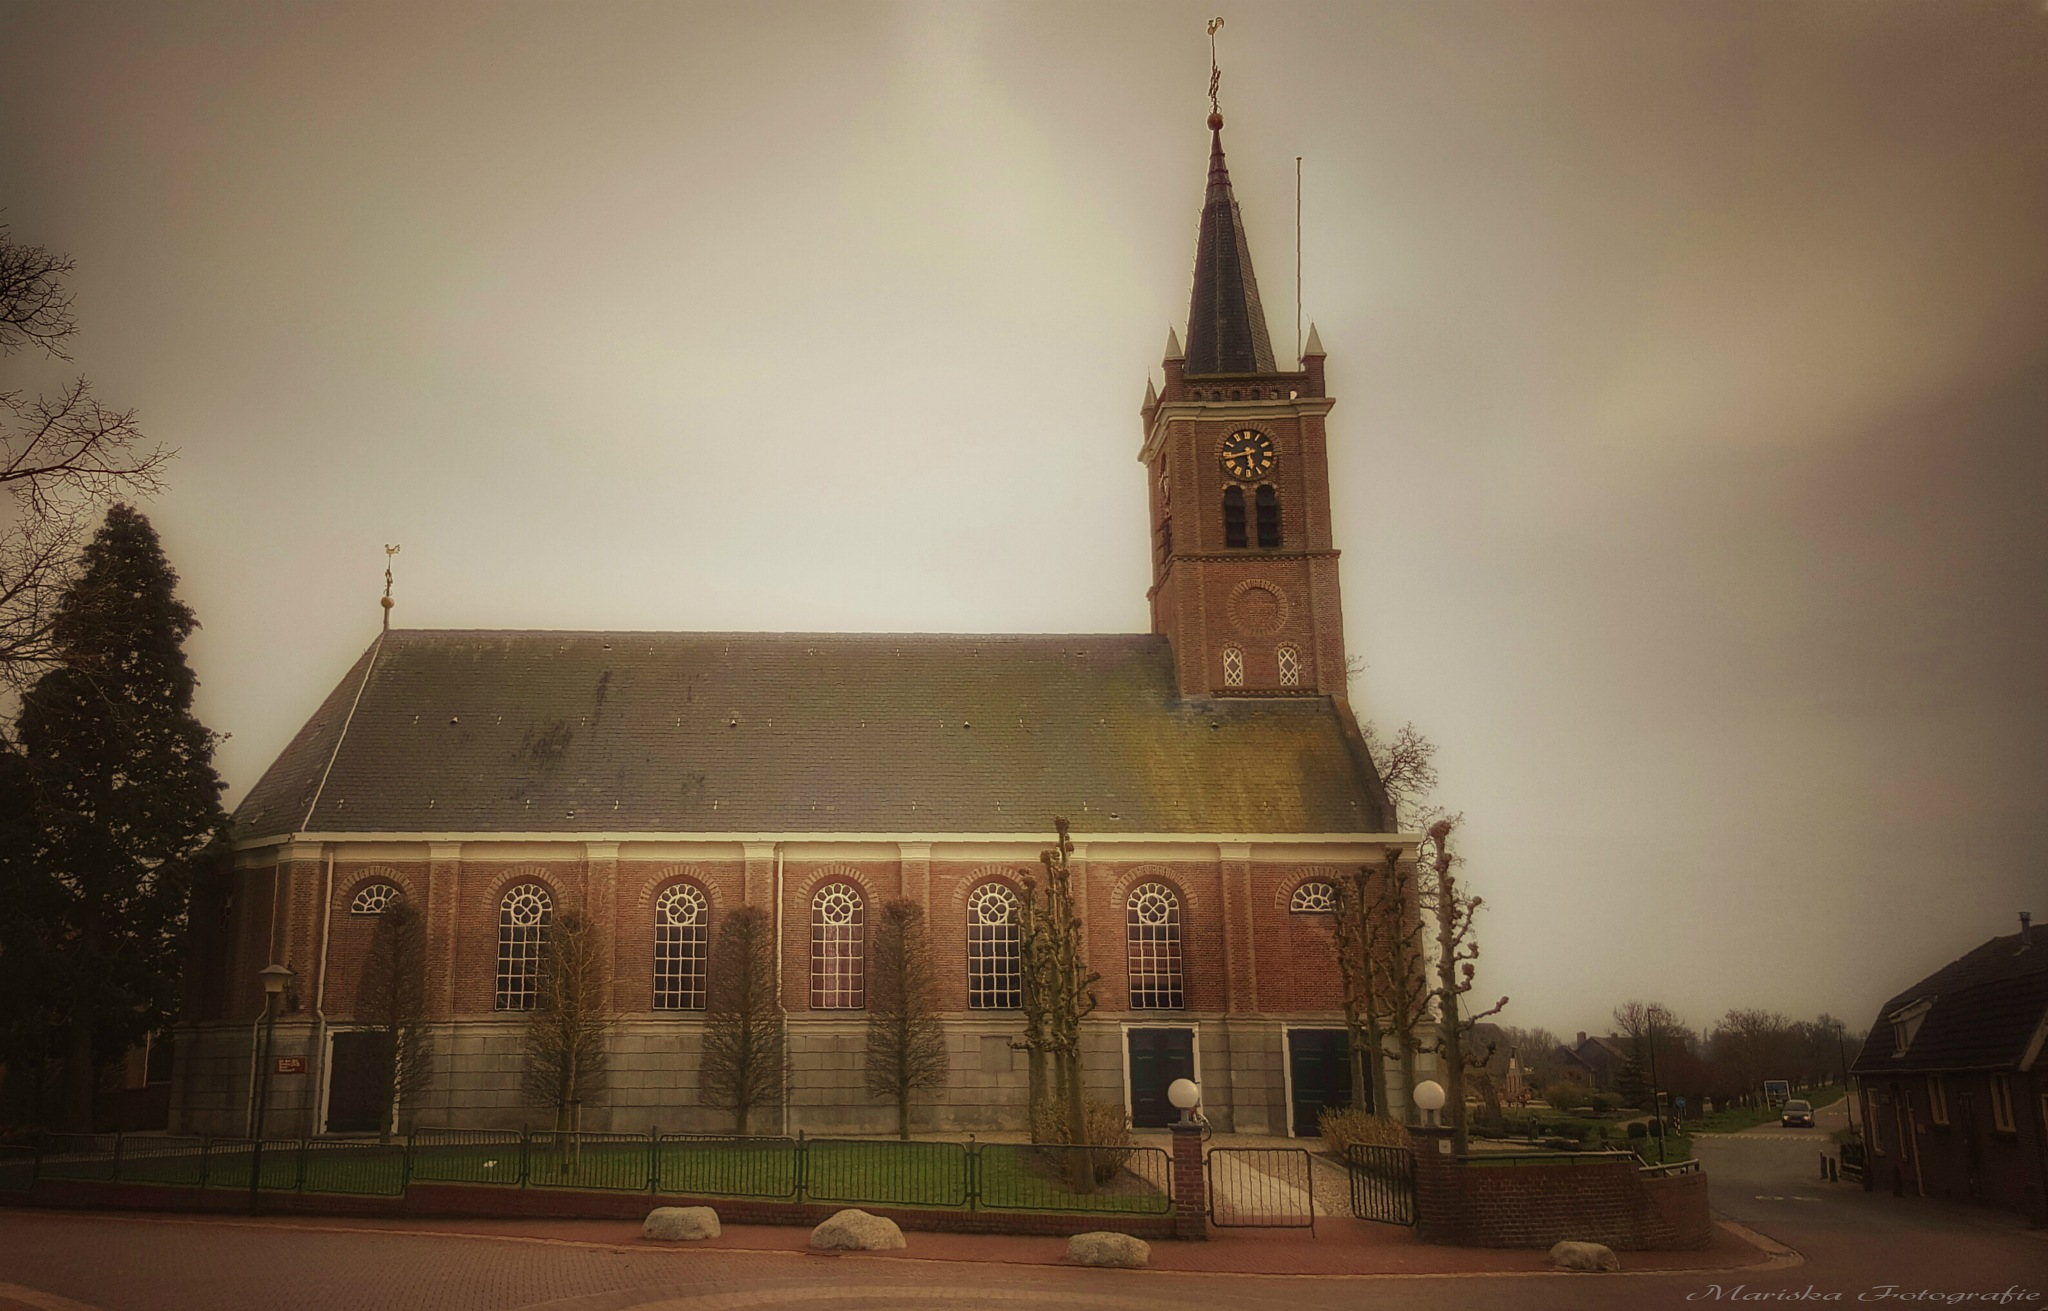 Arkel The Netherlands by Chaynasa